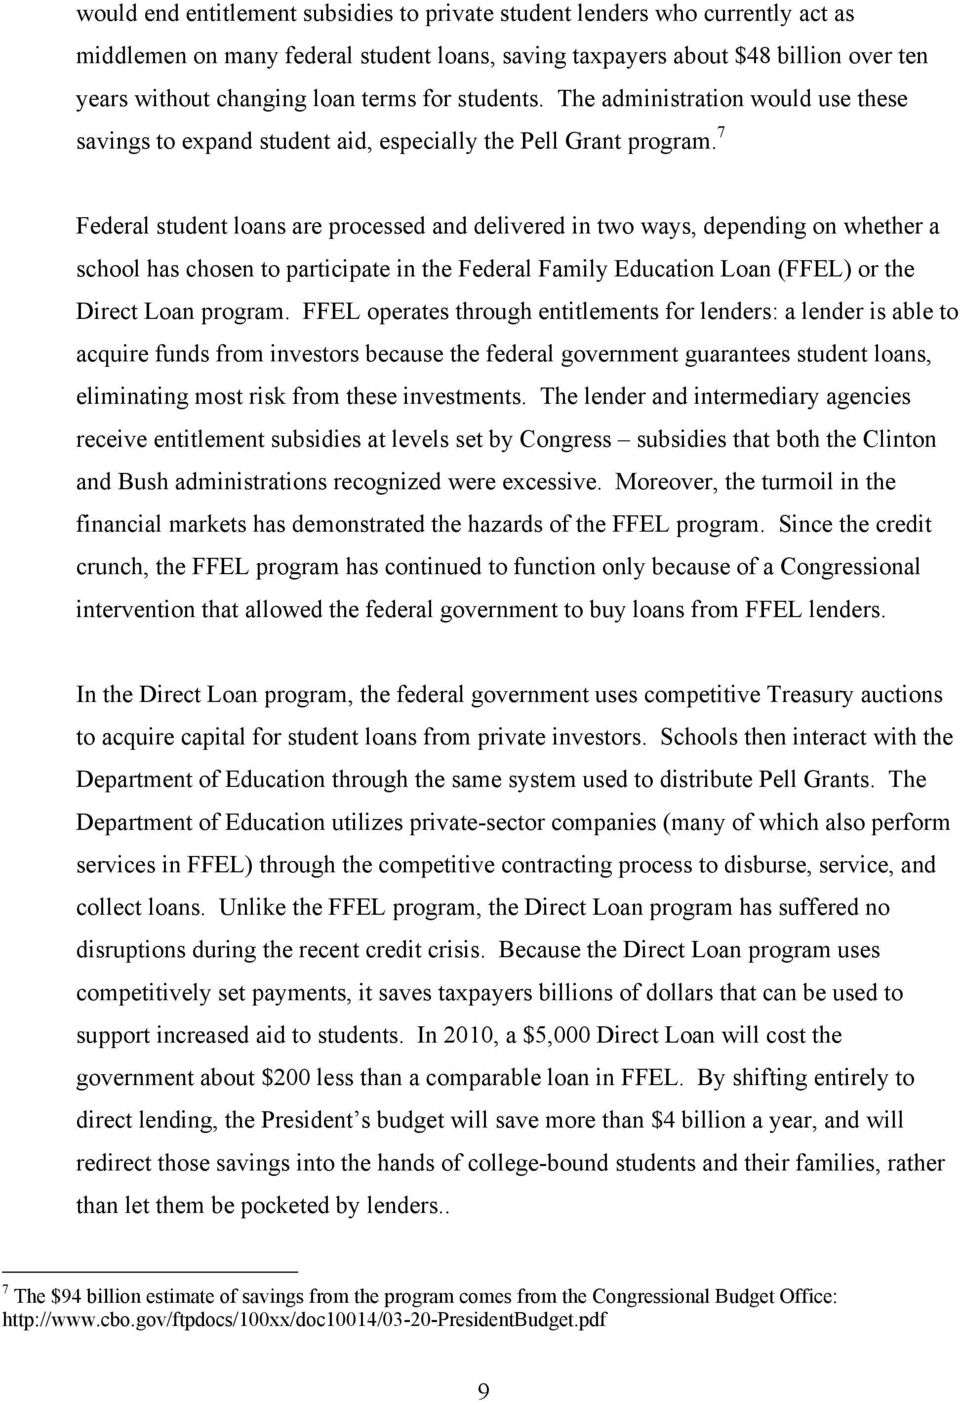 7 Federal student loans are processed and delivered in two ways, depending on whether a school has chosen to participate in the Federal Family Education Loan (FFEL) or the Direct Loan program.